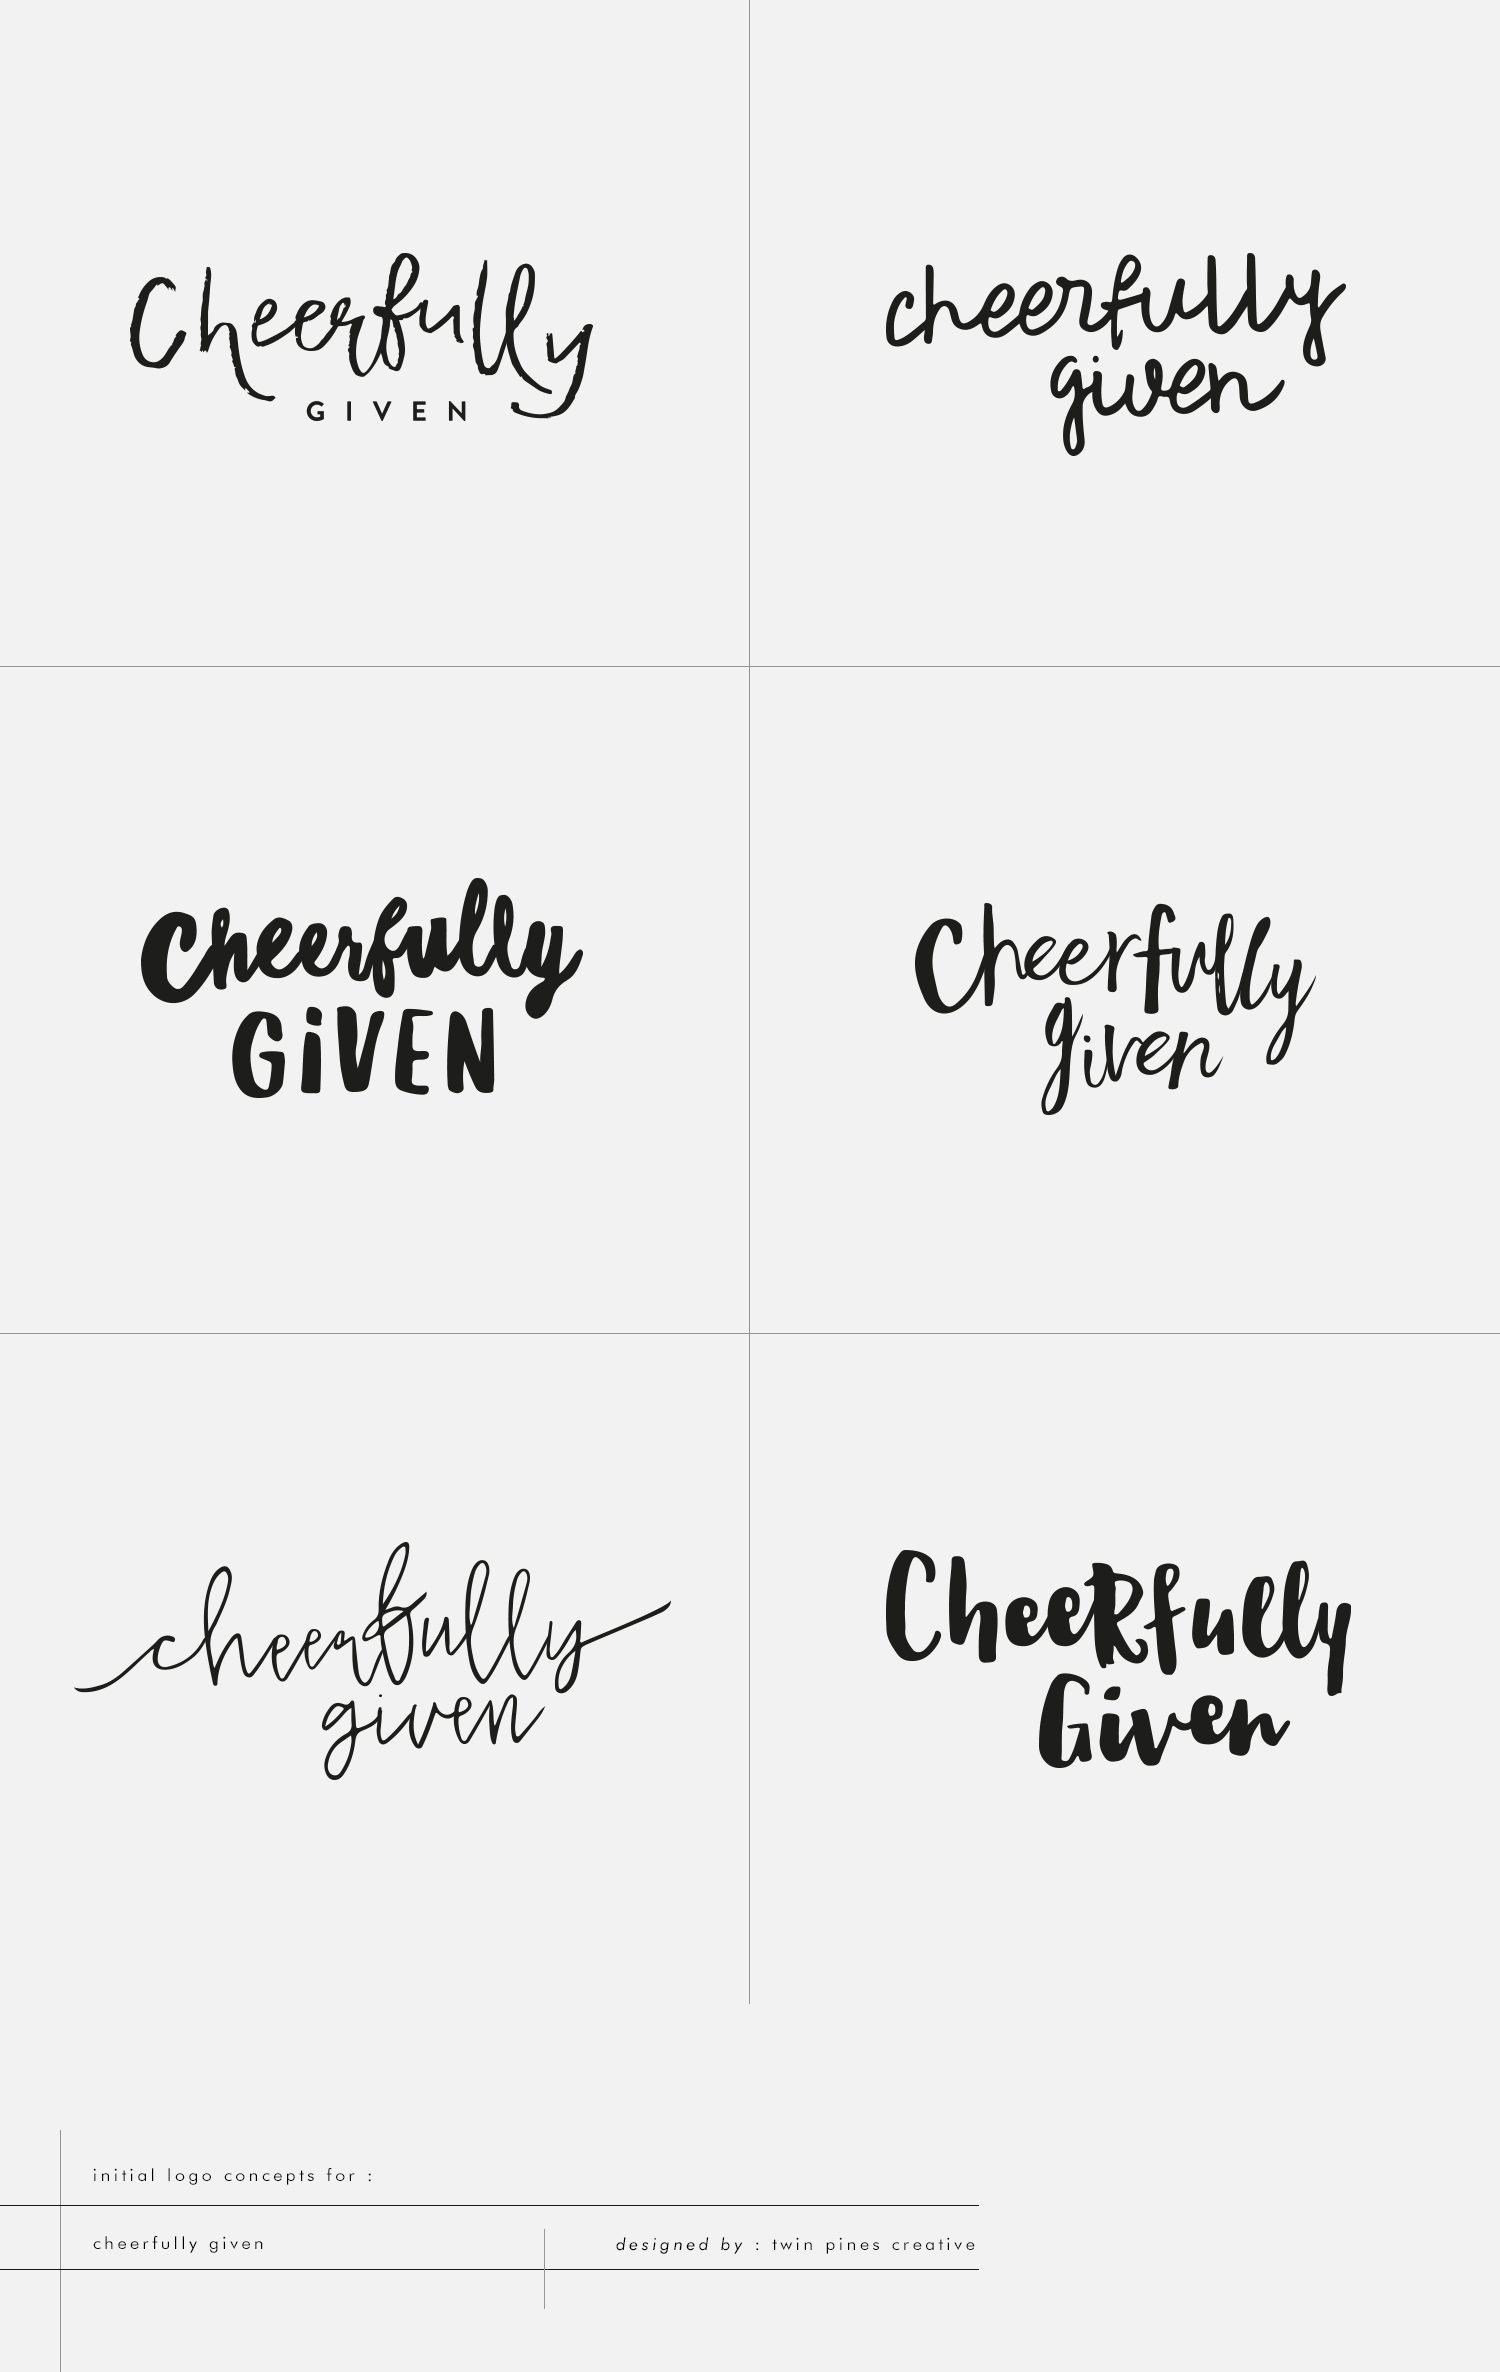 cheefullygiven_2-initial-concepts.png